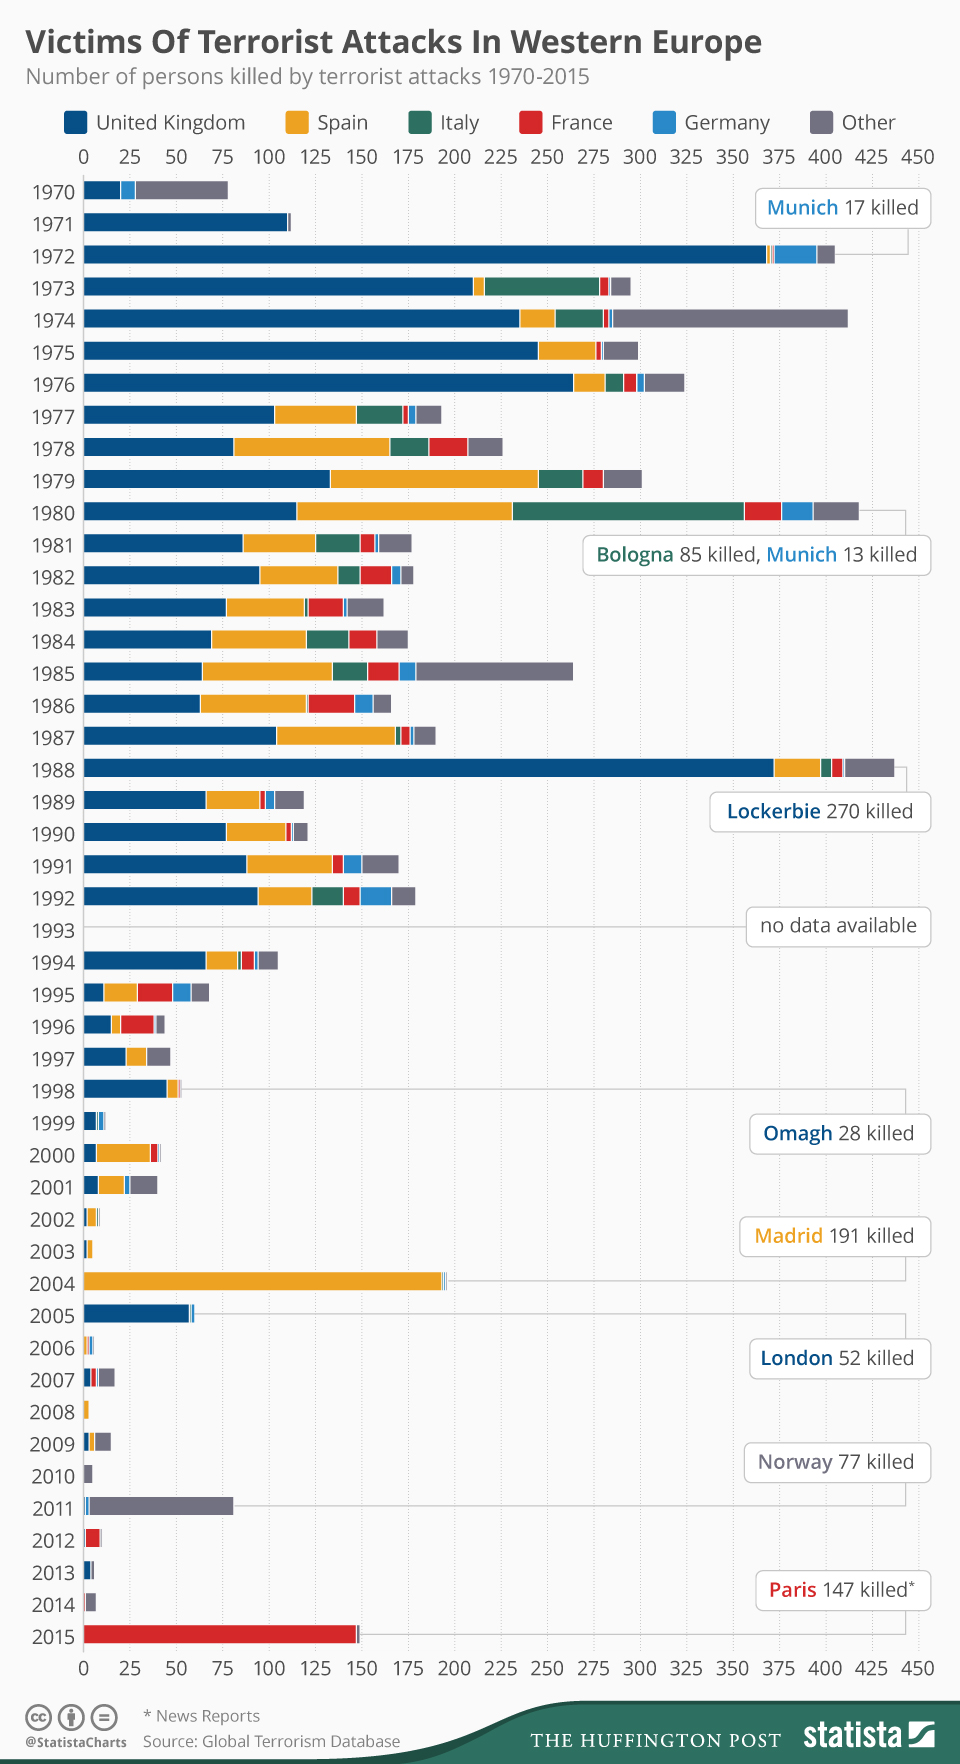 chartoftheday_4093_people_killed_by_terrorist_attacks_in_western_europe_since_1970_n